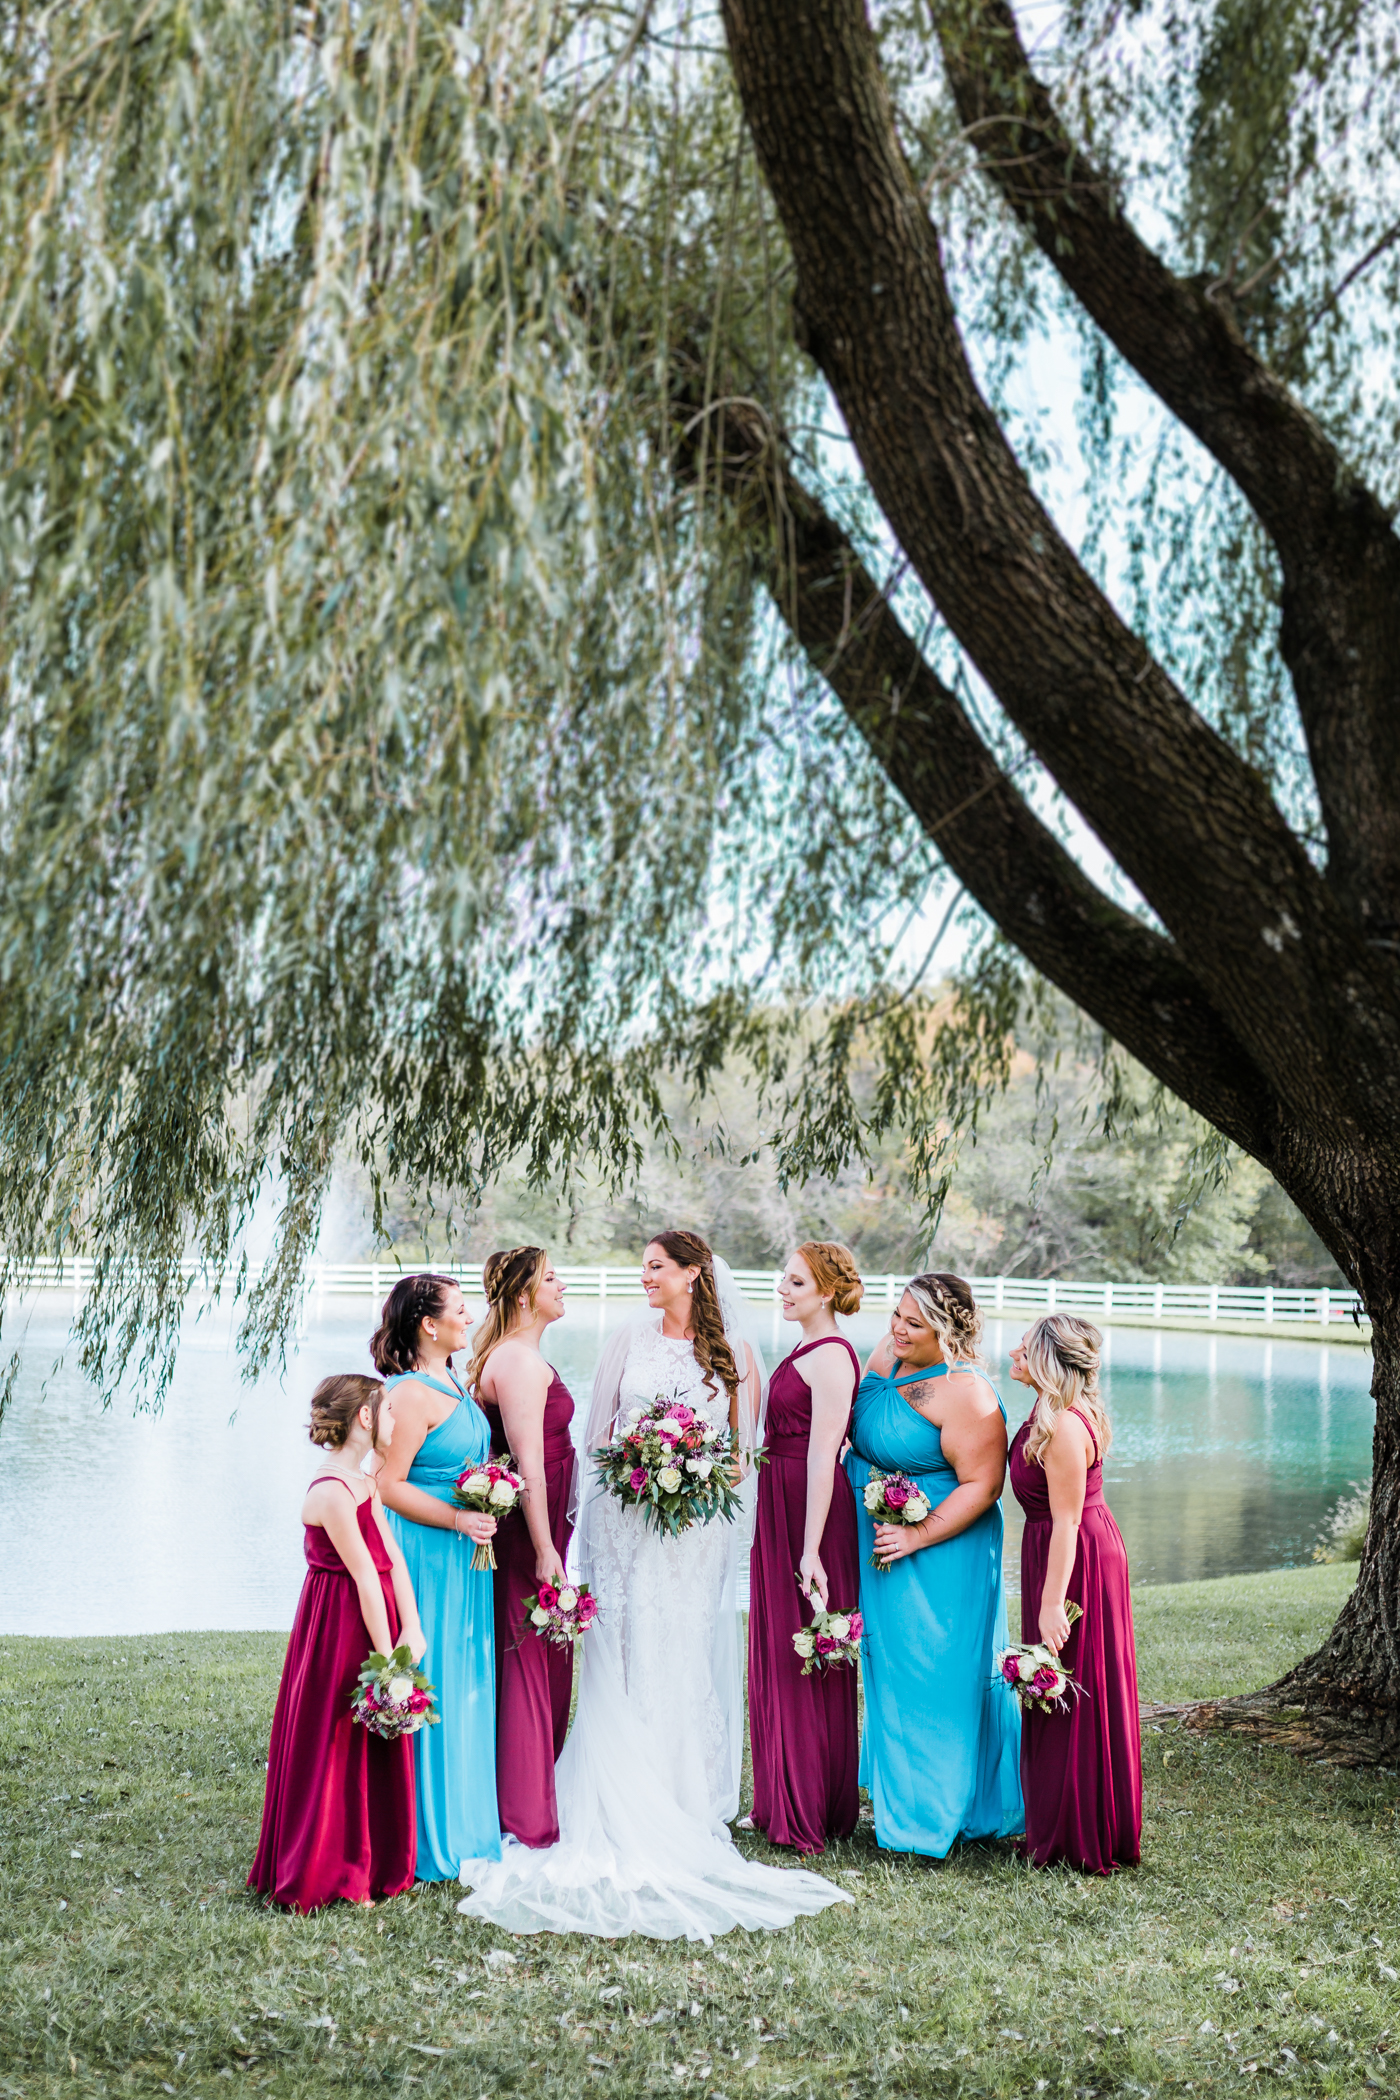 Bride with her bridesmaids at Pond View Farm - red and blue wedding color scheme